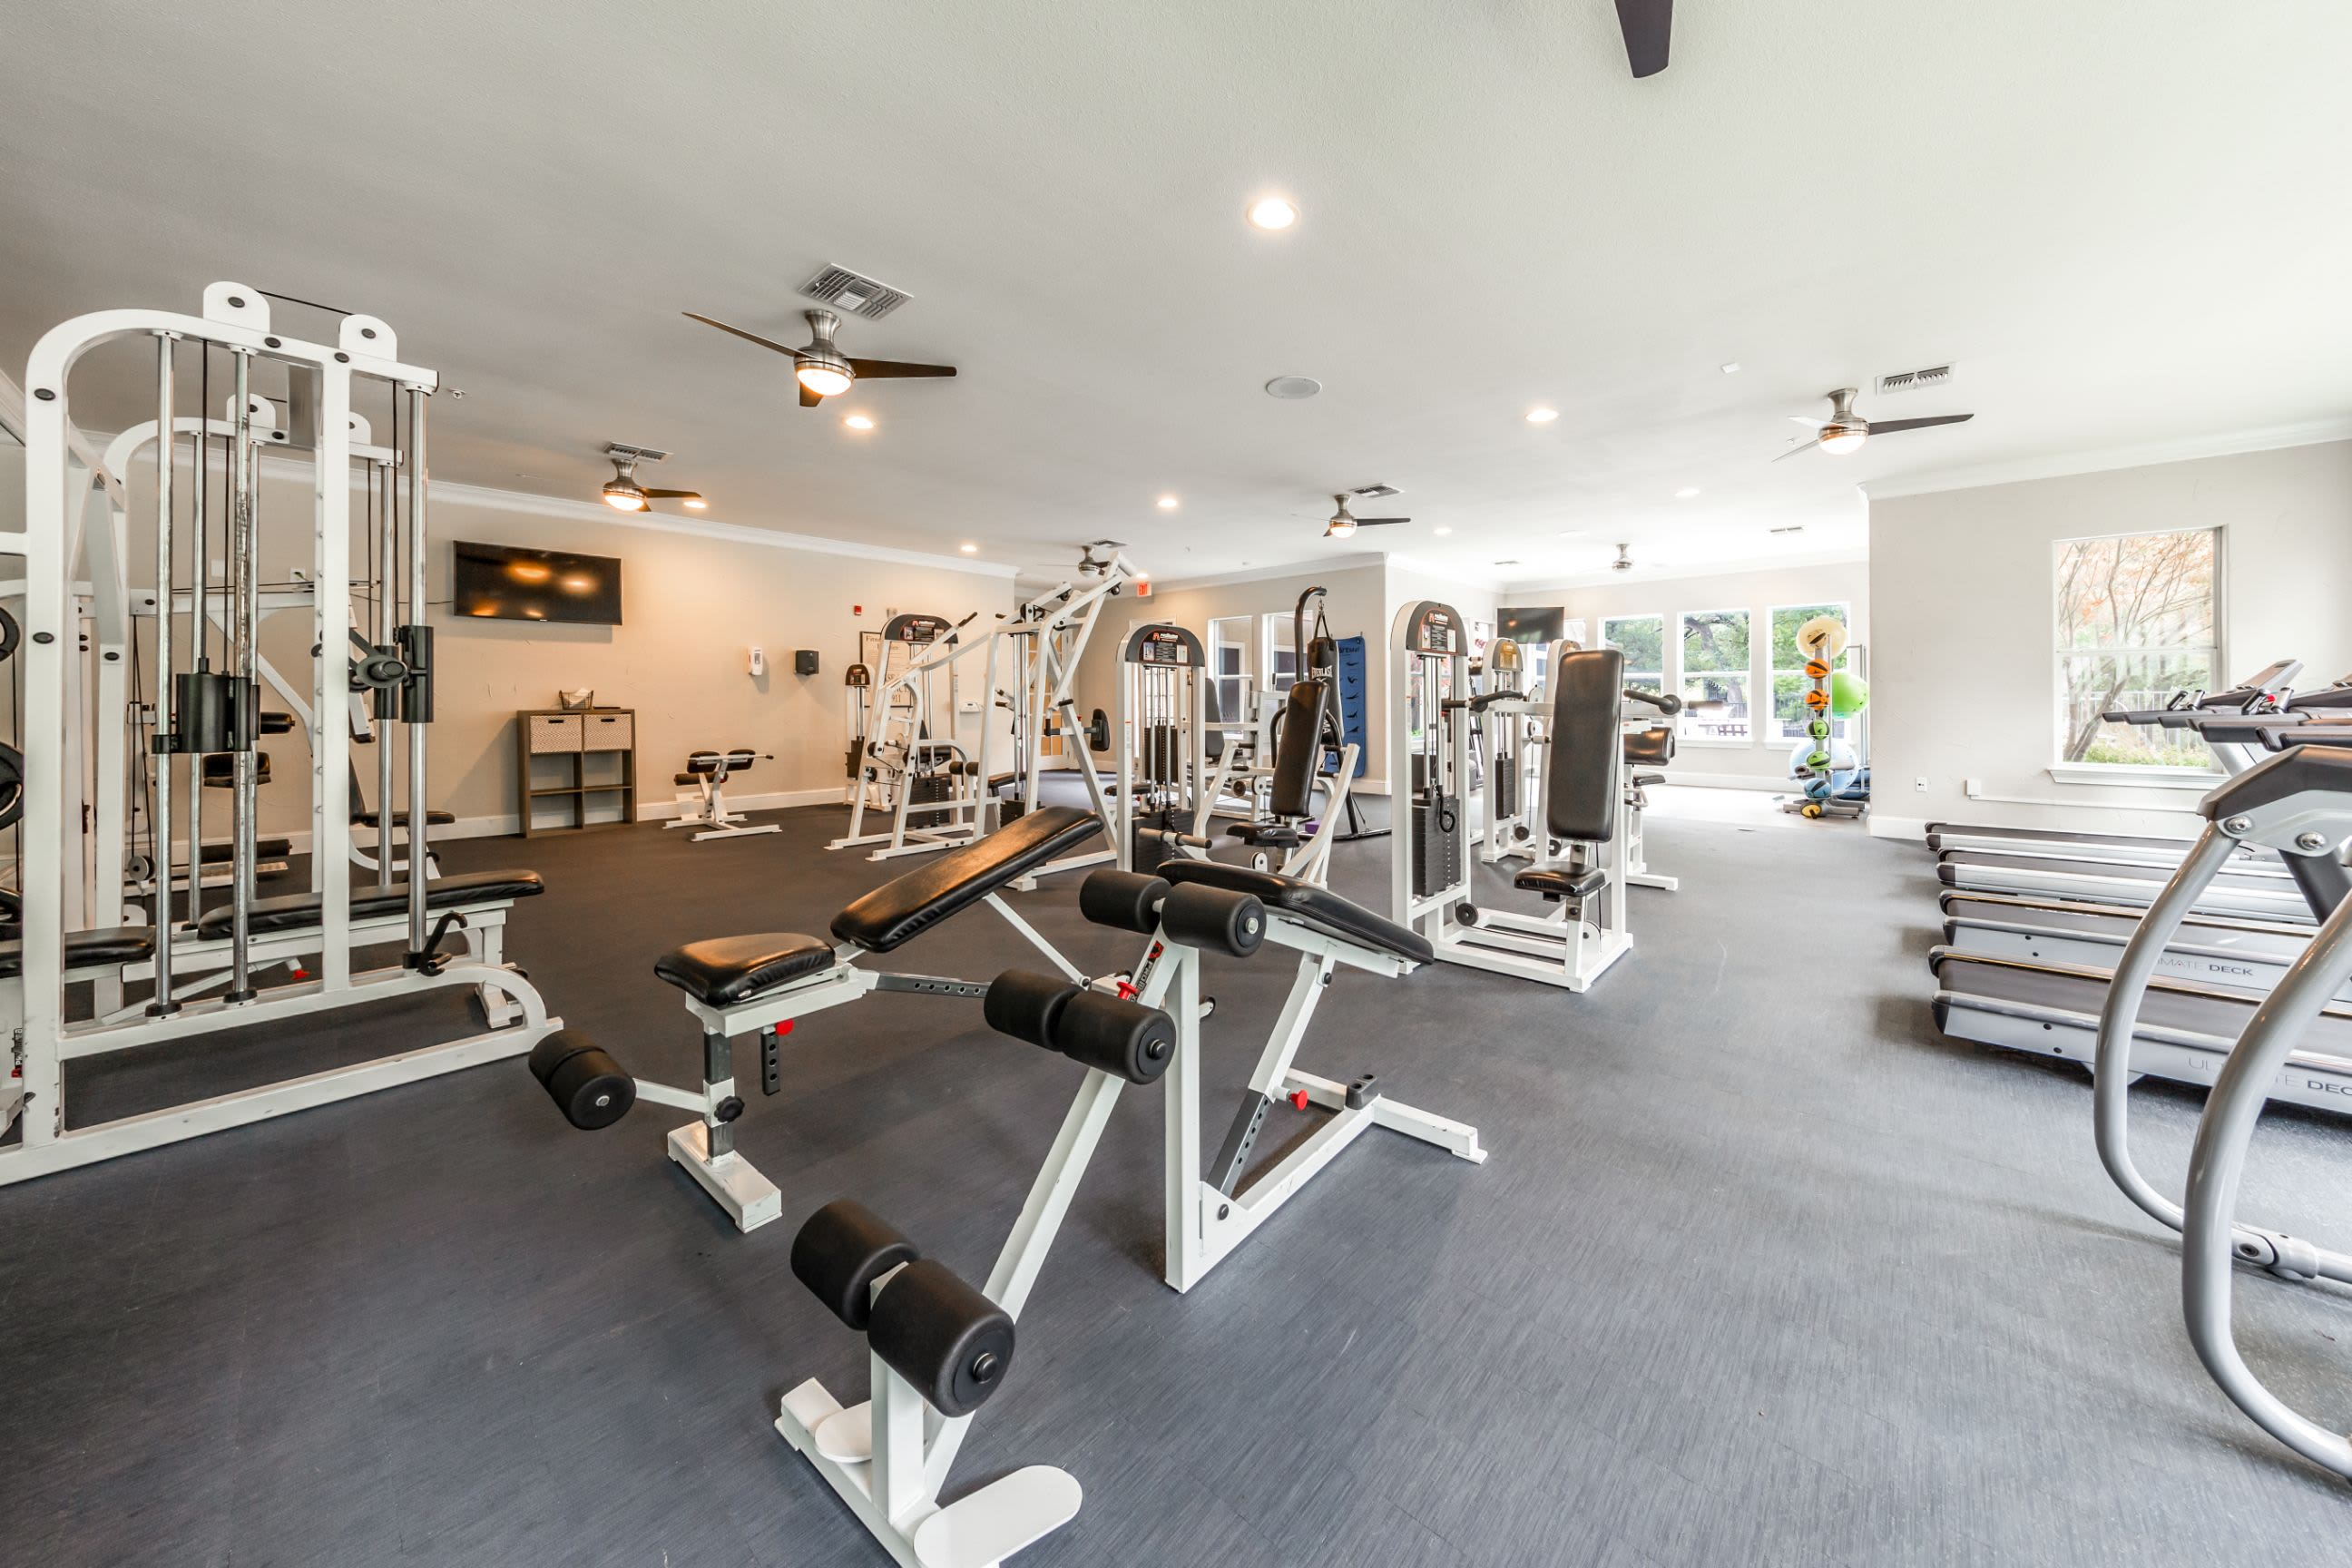 Benches and racks in fitness center Marquis at TPC in San Antonio, Texas